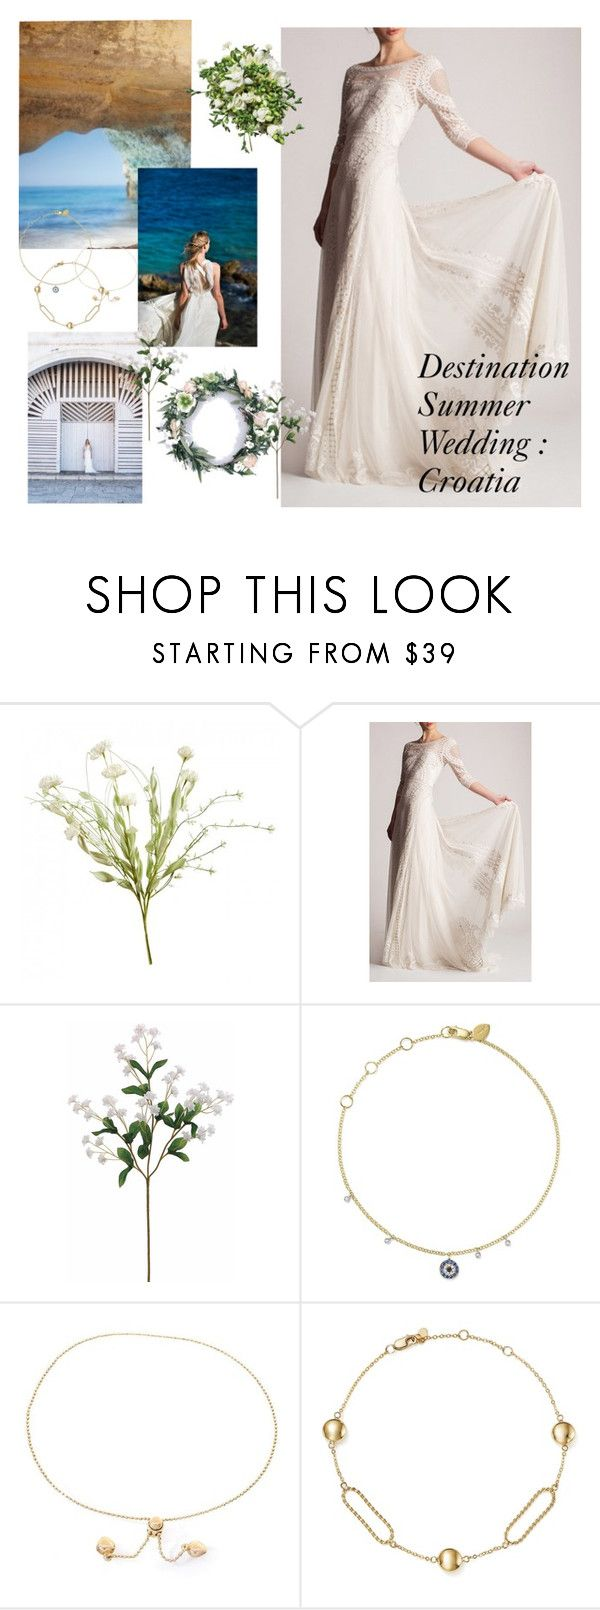 """Destination Summer Wedding: Croatia"" by laney-6428 ❤ liked on Polyvore featuring Temperley London, BHLDN, Meira T and Bloomingdale's"